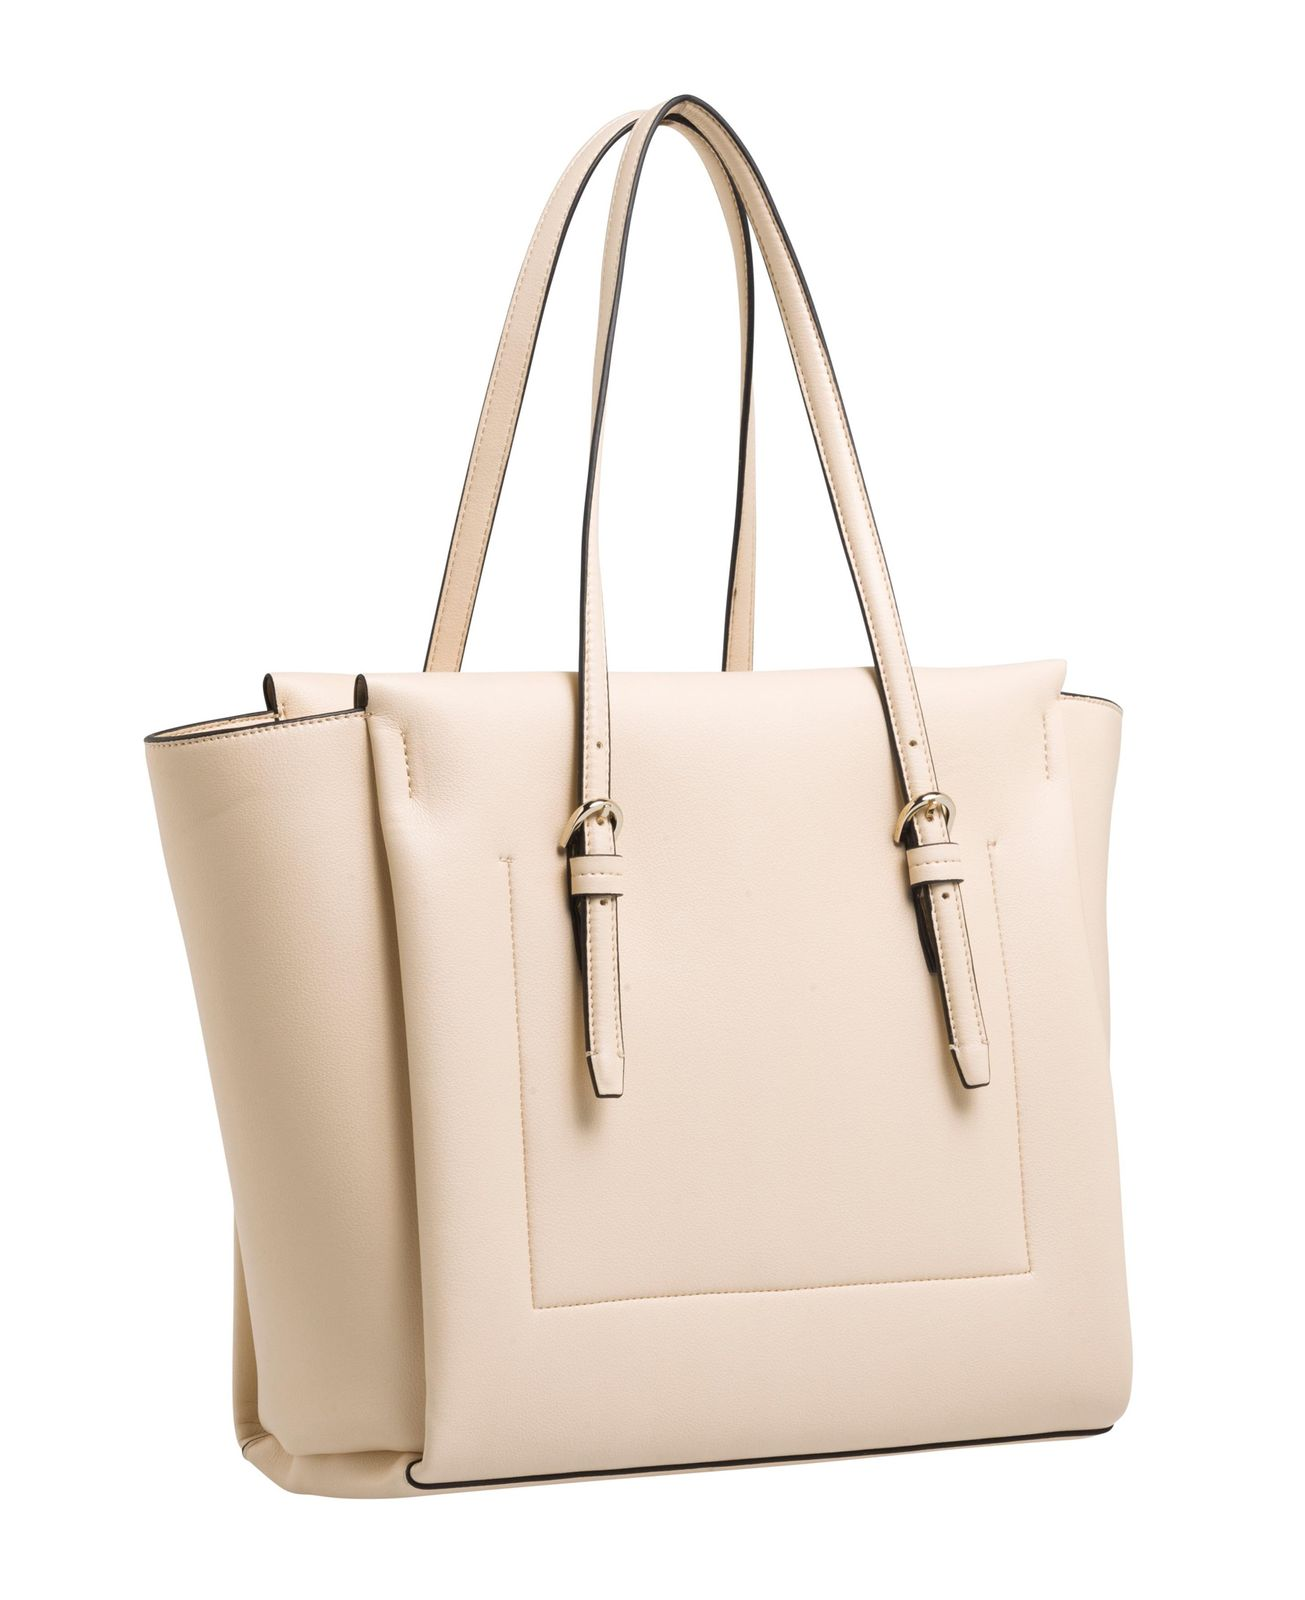 a74fa903c8 ... CloseCalvin Klein Avant Large Shopper Bag Light Sand / 117,22 €*Tap To  CloseOnly possible if you pay by Paypal, Amazon Payments, Credit Card, ...